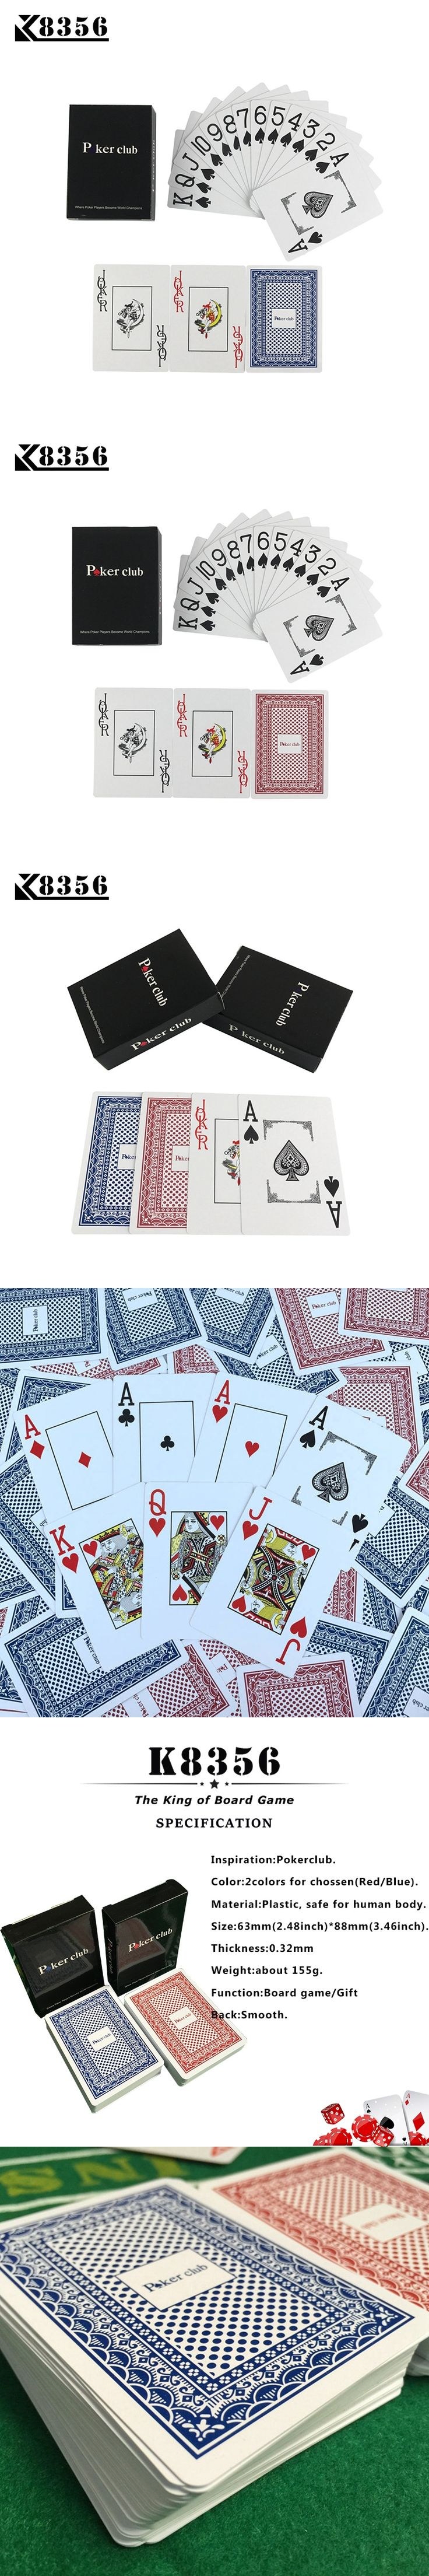 K8356 Smooth Waterproof 2 Sets/Lot Baccarat Texas Hold'em Plastic Playing Cards PVC Poker Club Cards Board Games 2.48*3.46 inch